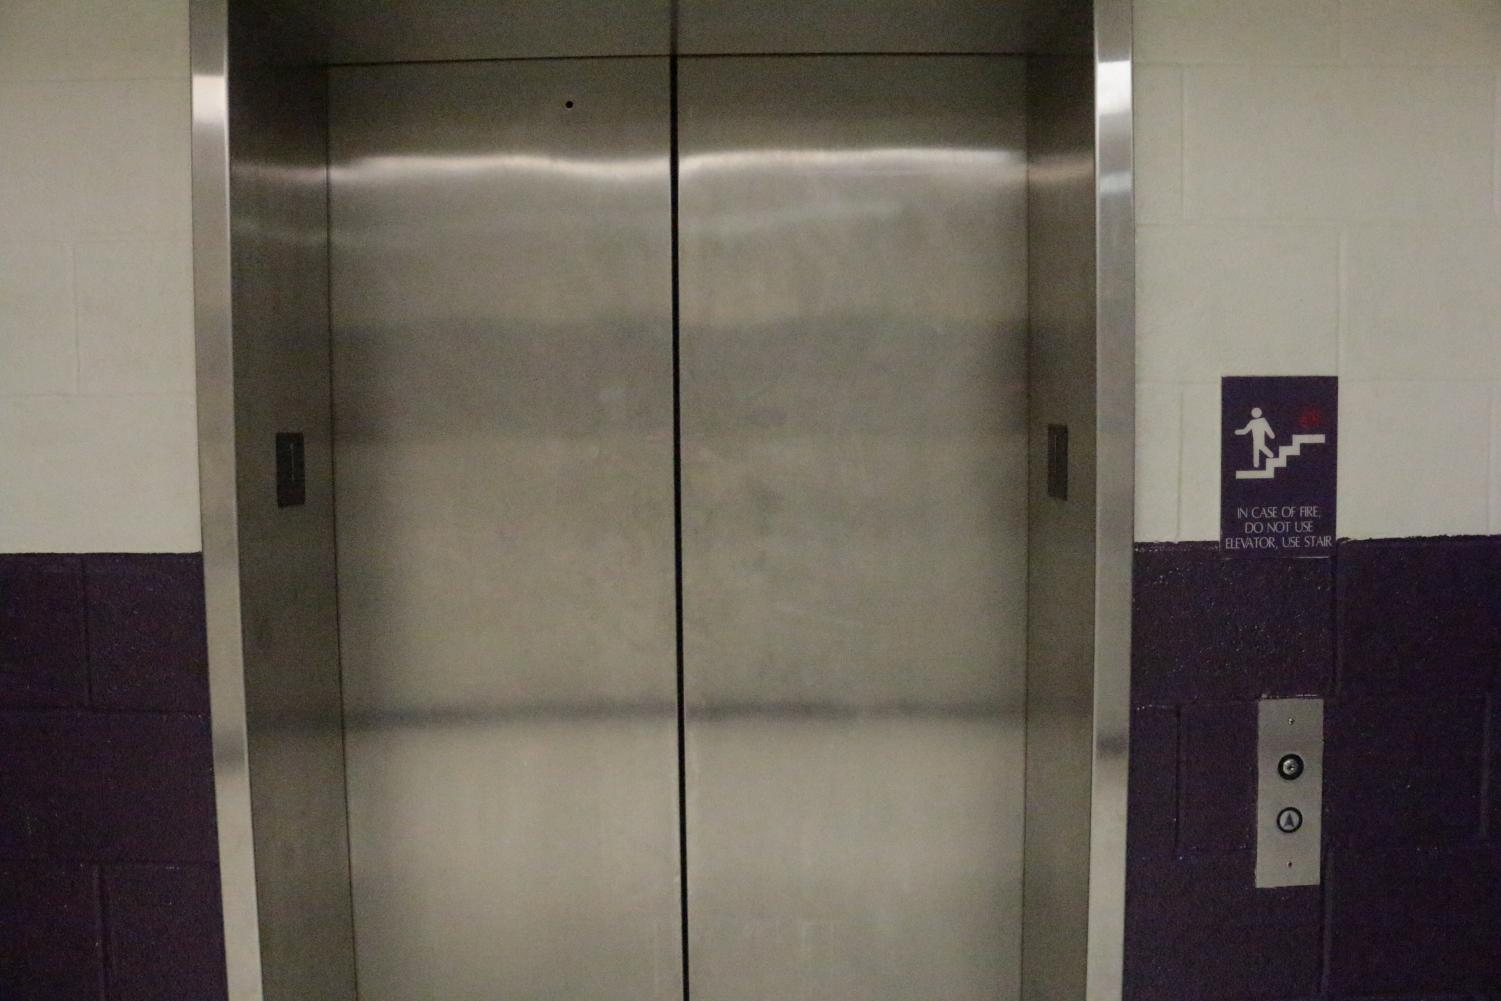 South's single elevator (pictured above) has broken twice in the last week